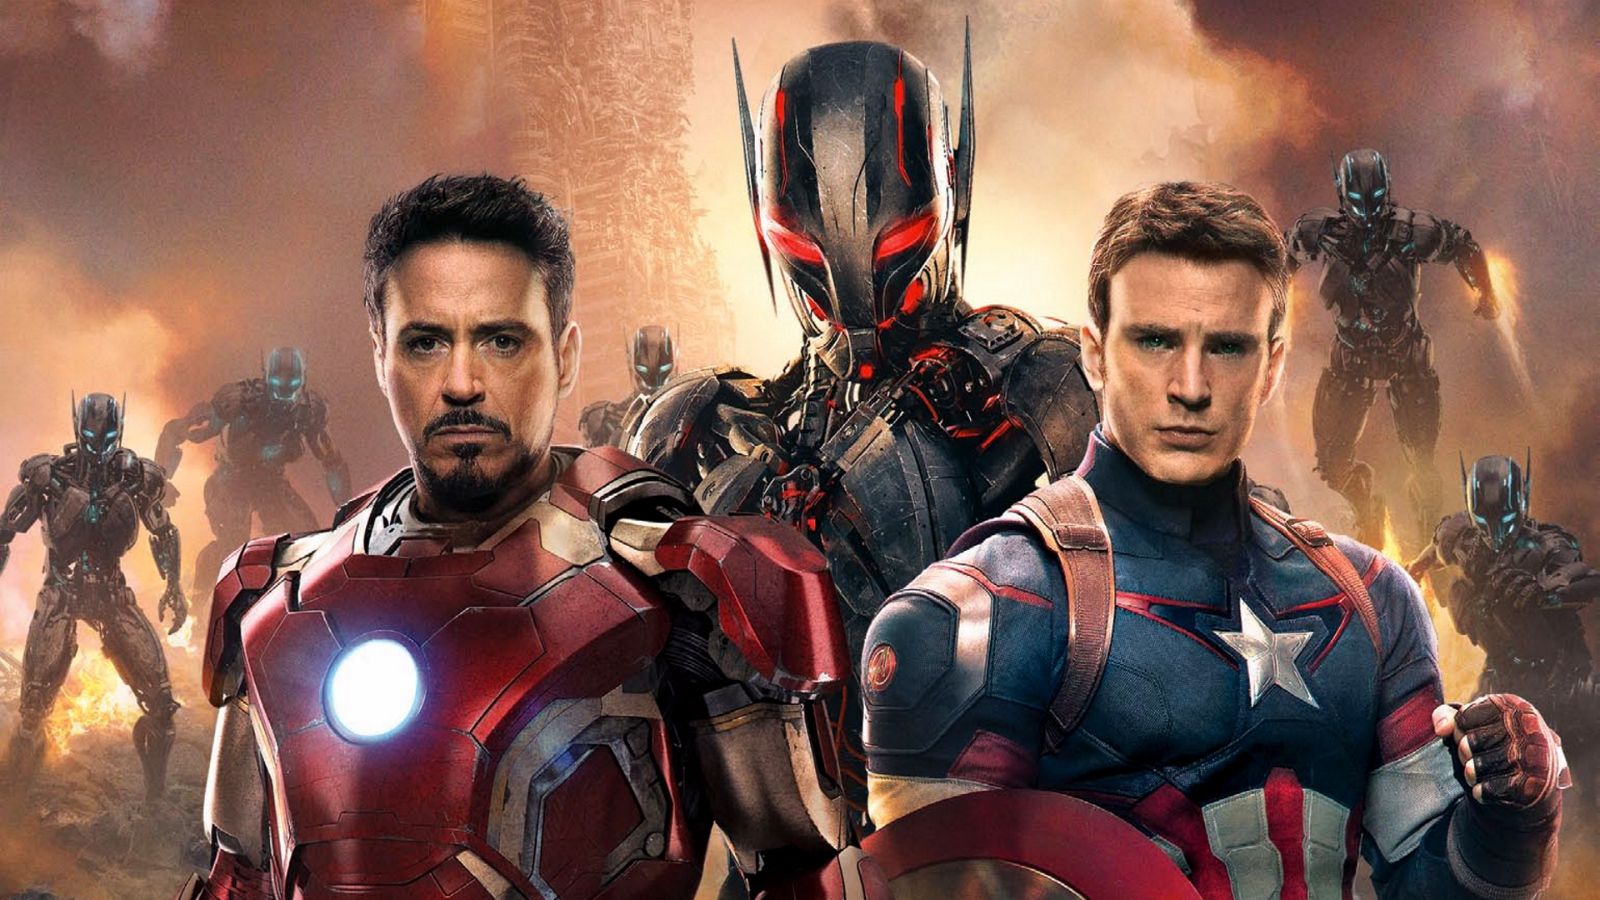 Avenger Age of Ultron Cast Avengers Age of Ultron Makers